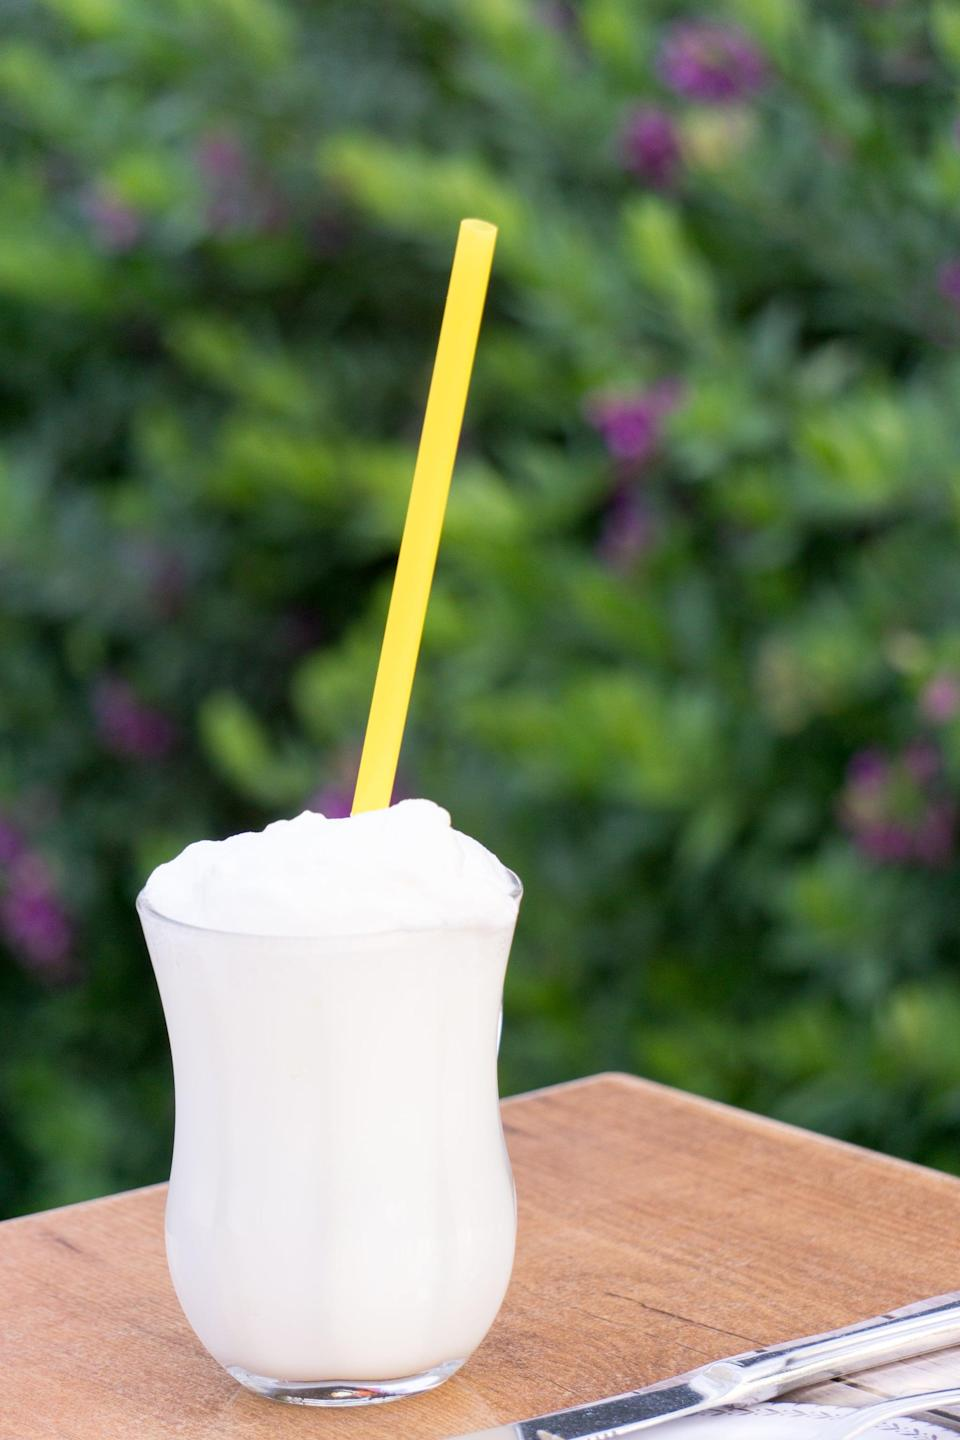 """<p>A chocolate-flavored piña colada sans the pineapple, this indulgent bushwacker will have you sippin' all summer. Enjoy it as an afternoon refresher or treat it like an after-dinner delicacy. </p> <p><strong>Get the recipe</strong>: <a href=""""https://www.popsugar.com/buy?url=https%3A%2F%2Fwww.thespruceeats.com%2Fbushwacker-cocktail-recipe-760503&p_name=bushwacker&retailer=thespruceeats.com&evar1=yum%3Aus&evar9=47471653&evar98=https%3A%2F%2Fwww.popsugar.com%2Ffood%2Fphoto-gallery%2F47471653%2Fimage%2F47475470%2FLouisiana-Bushwacker&list1=cocktails%2Cdrinks%2Calcohol%2Crecipes&prop13=api&pdata=1"""" class=""""link rapid-noclick-resp"""" rel=""""nofollow noopener"""" target=""""_blank"""" data-ylk=""""slk:bushwacker"""">bushwacker</a></p>"""